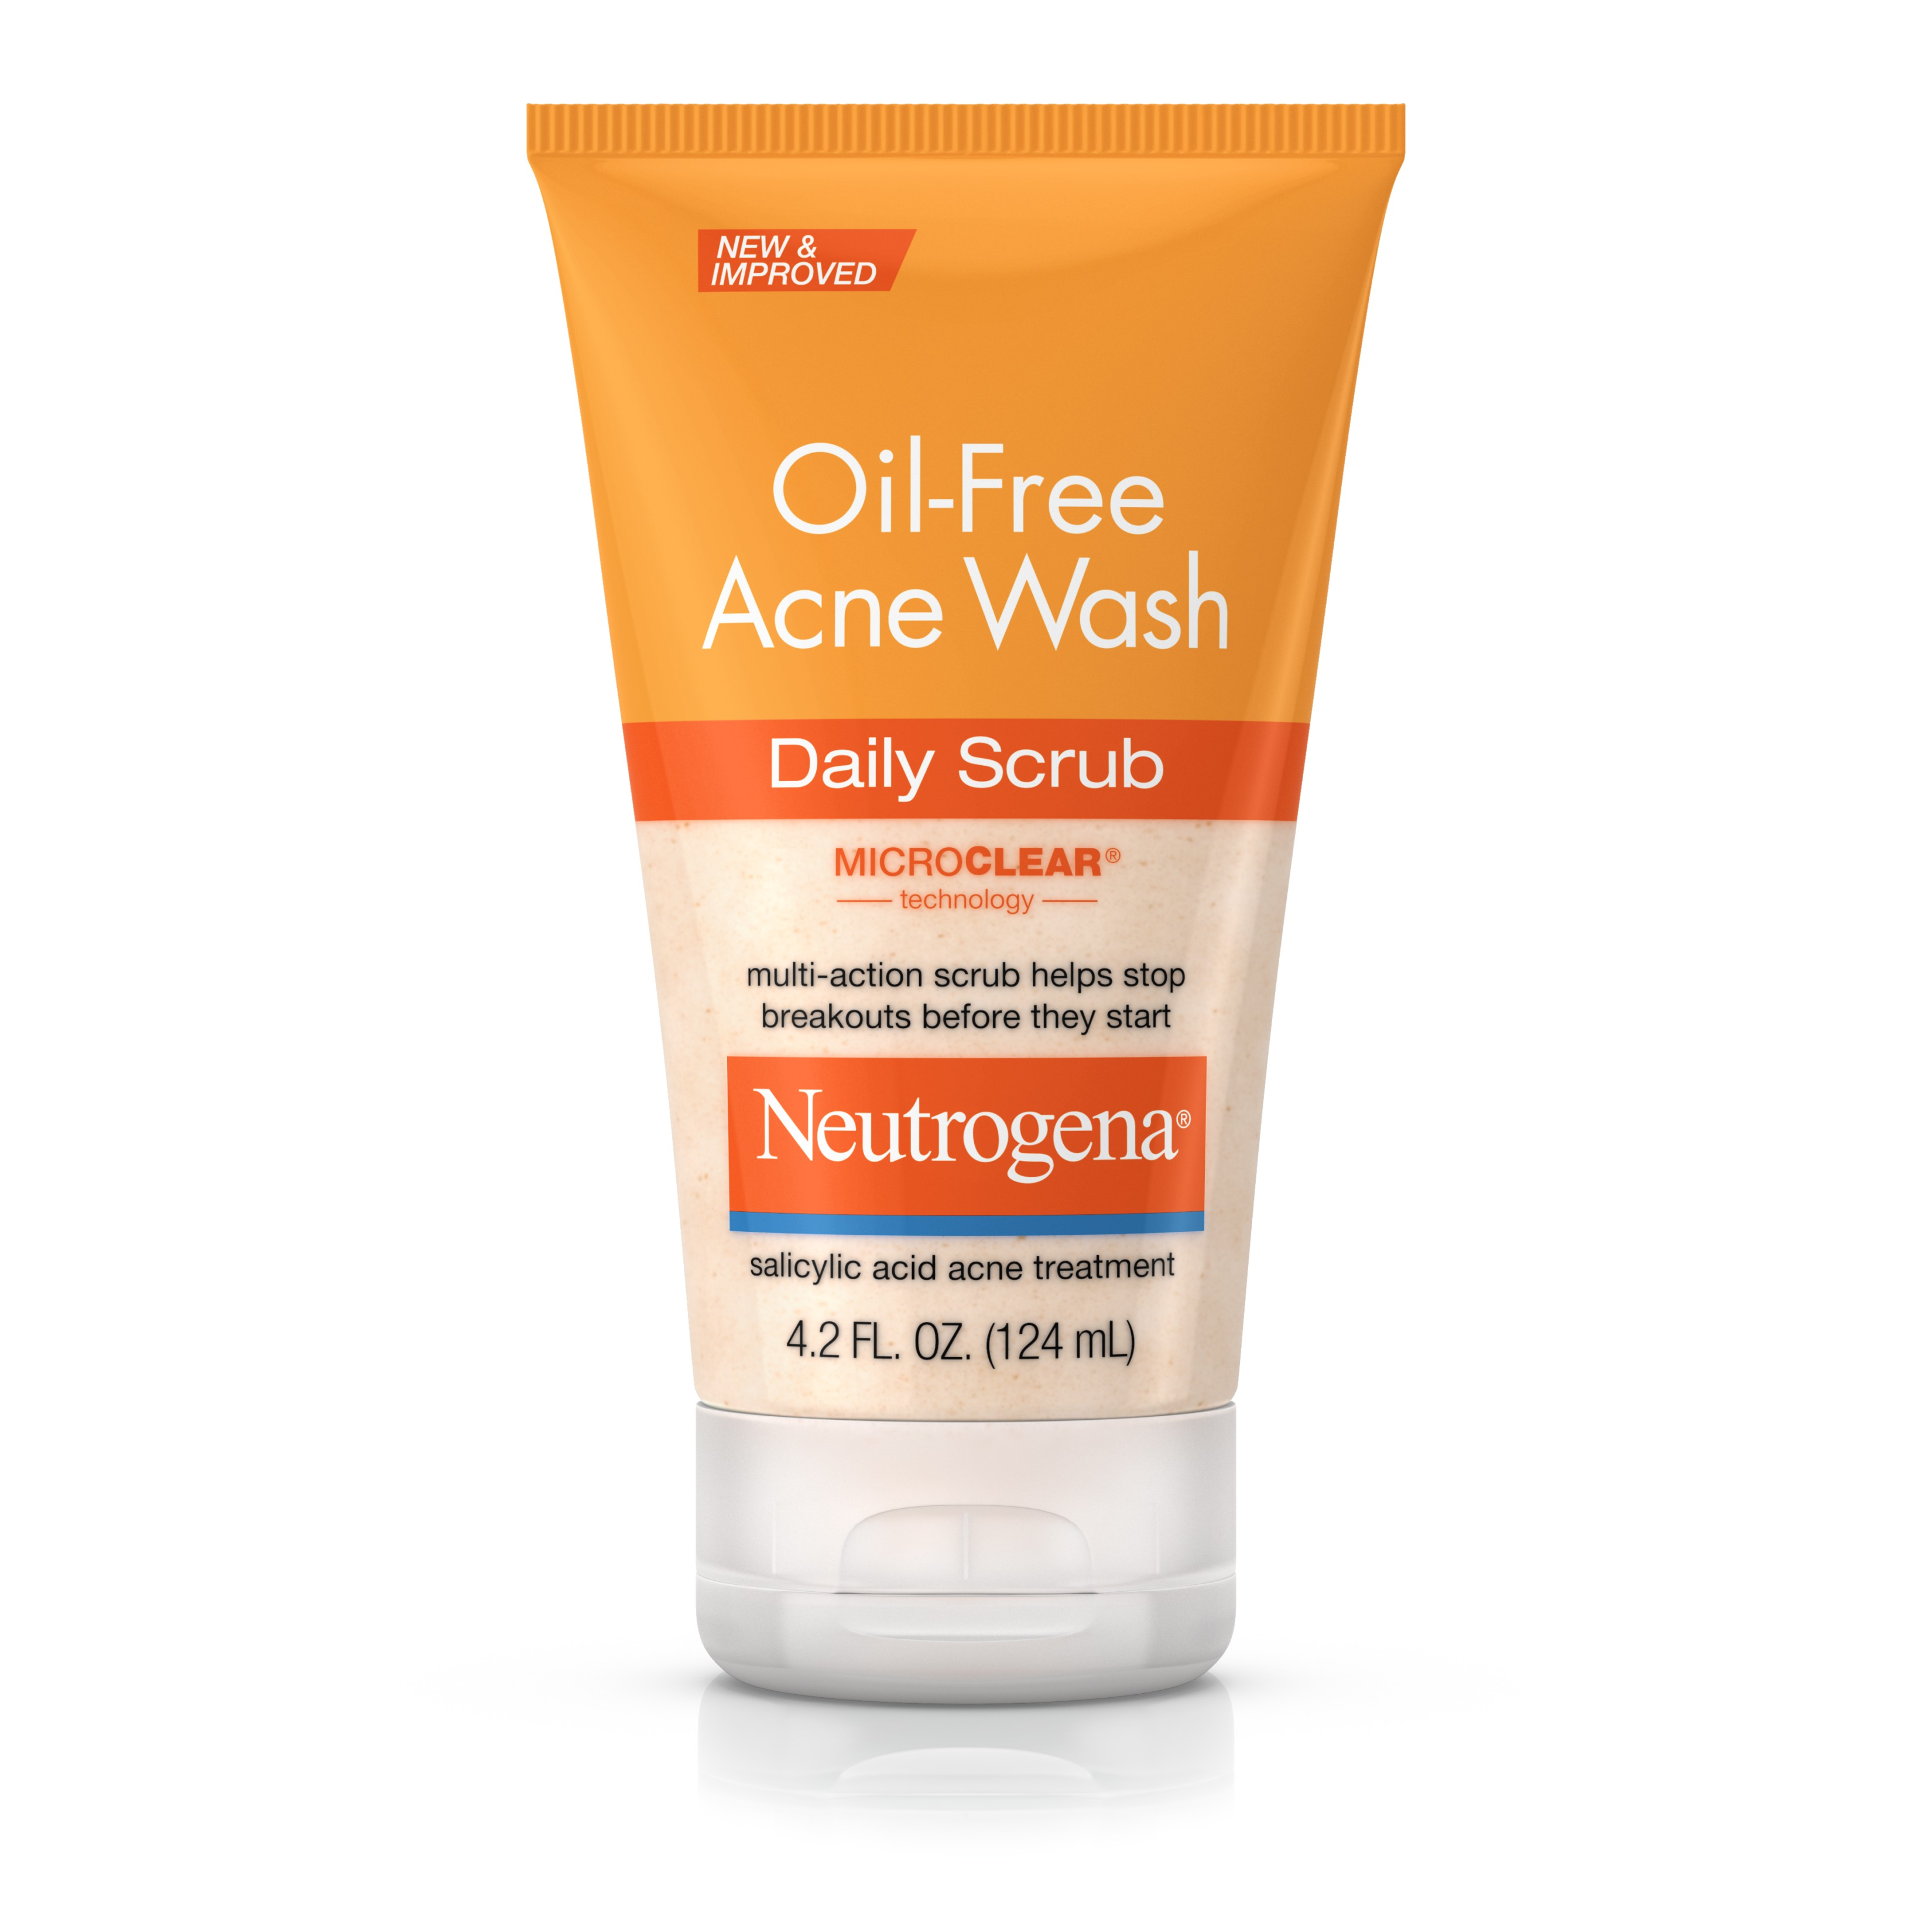 Neutrogena Oil-Free Acne Face Wash Daily Face Scrub, 4.2 fl. oz